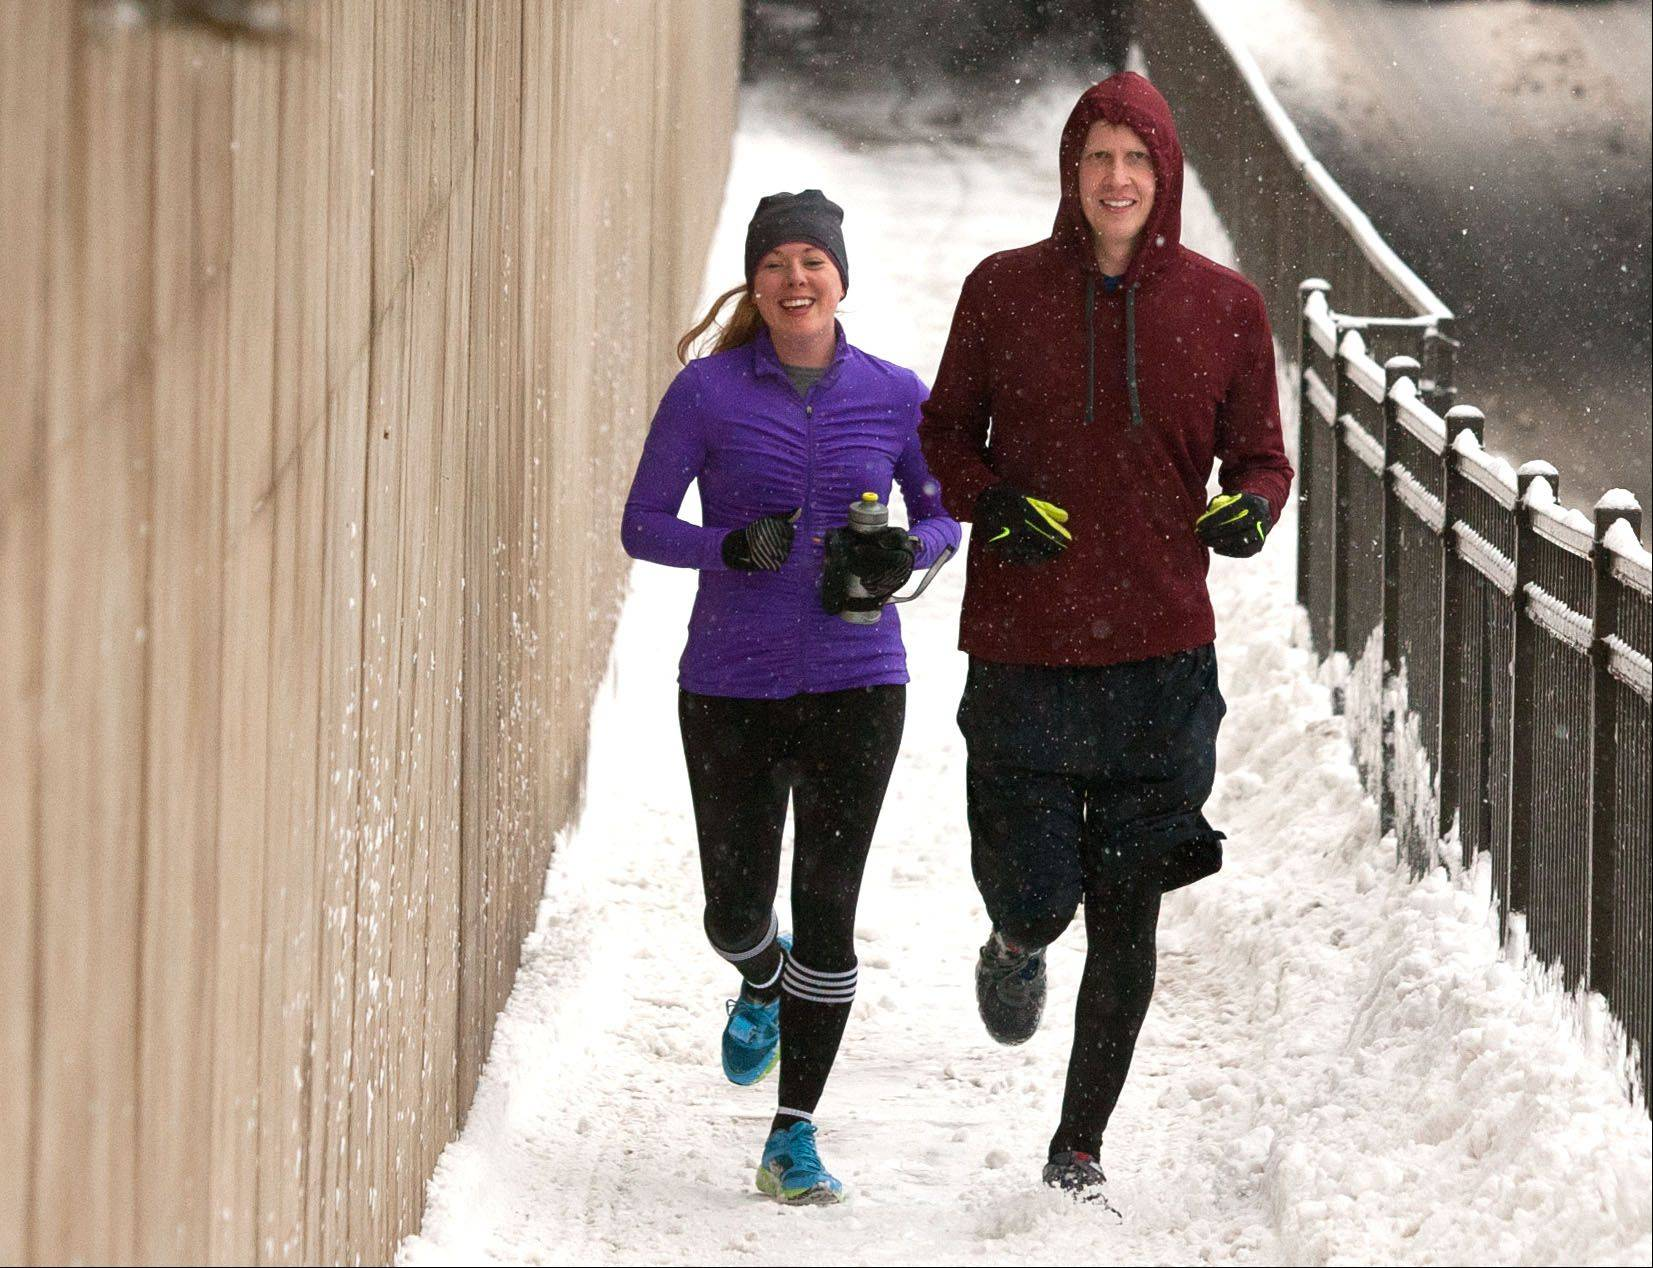 Teresa Nydegger, left, of Naperville and Shawn Pajor, right, of Palatine don't mind the snow as they run through downtown Naperville.